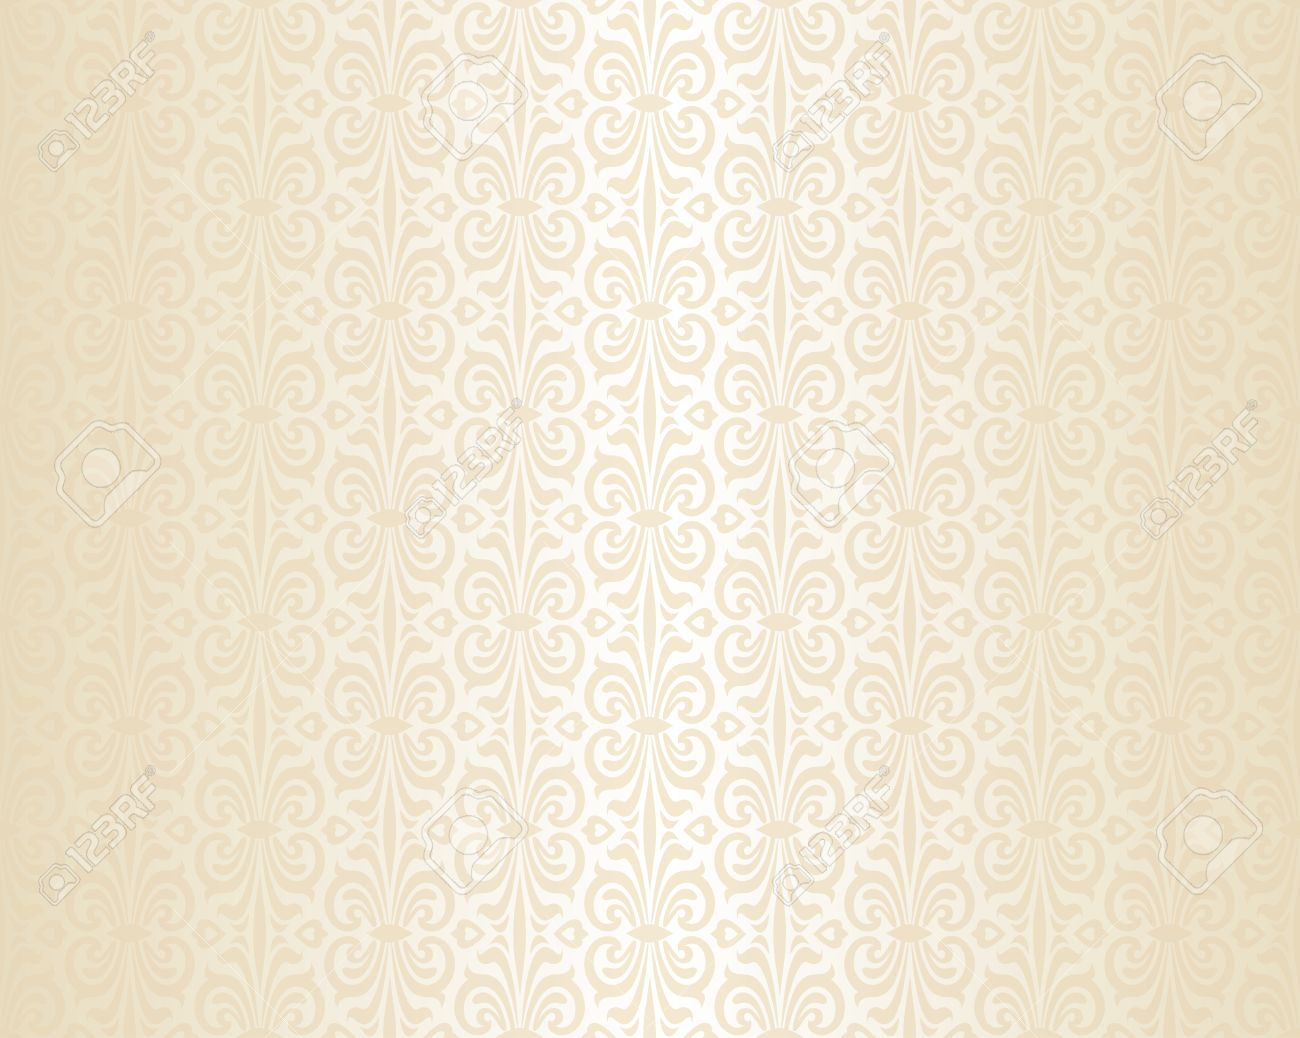 bright wedding beige luxury vintage wallpaper background pattern royalty free cliparts vectors and stock illustration image 54248956 bright wedding beige luxury vintage wallpaper background pattern